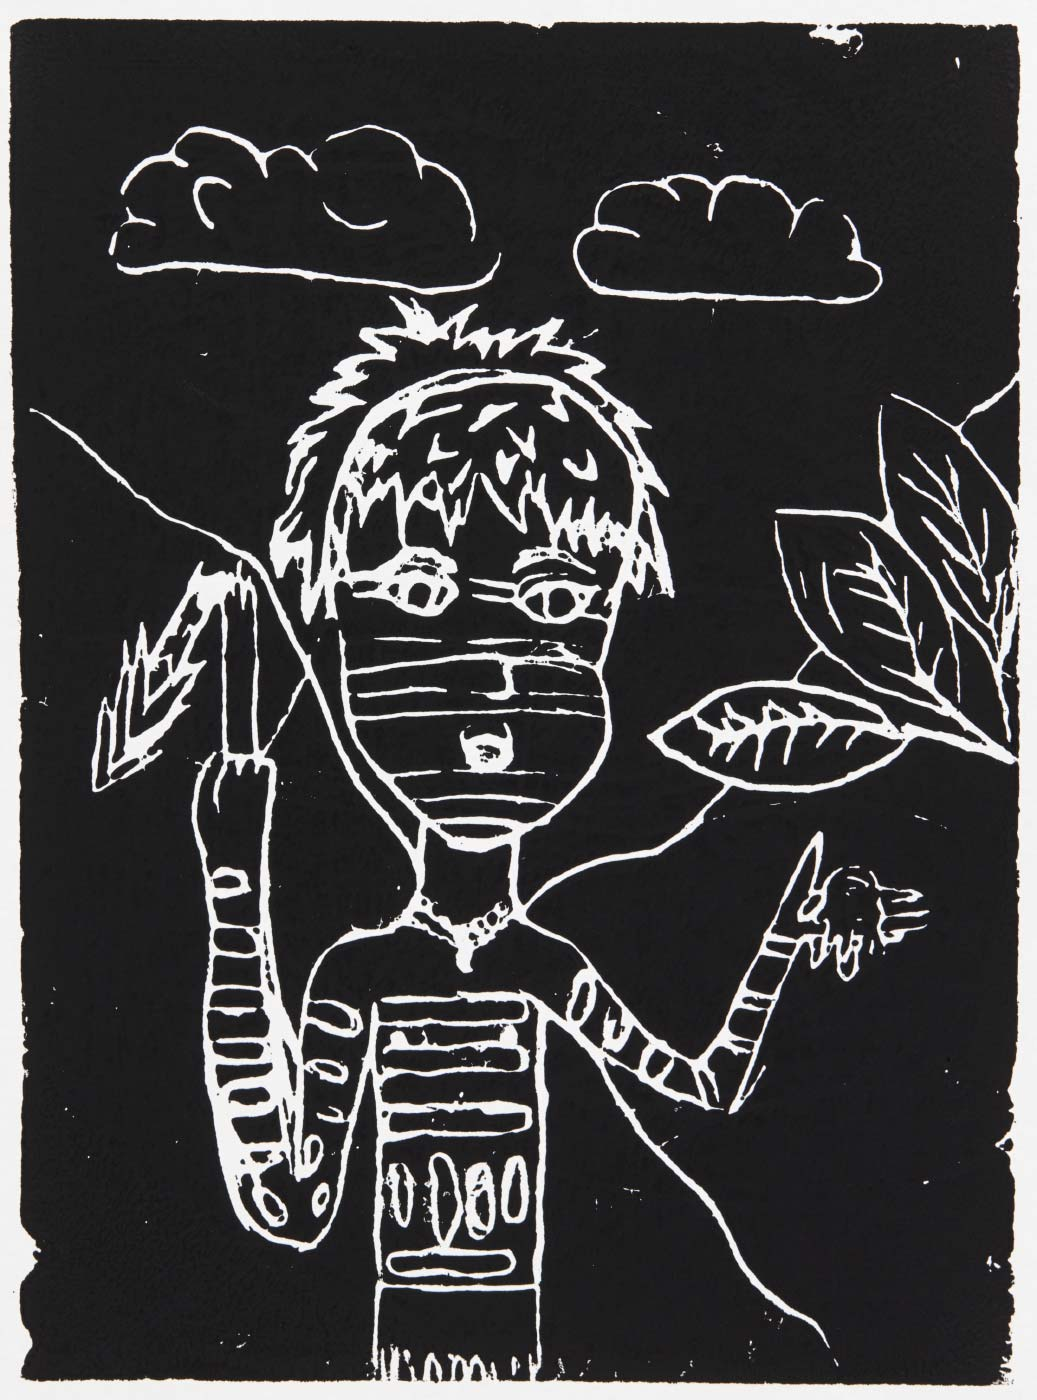 Print, black ink on white paper, depicting the decorated head and torso of a figure, with leaves to the right and cloud above. Annotated in pencil 'Sarah 2/12/19'. - click to view larger image